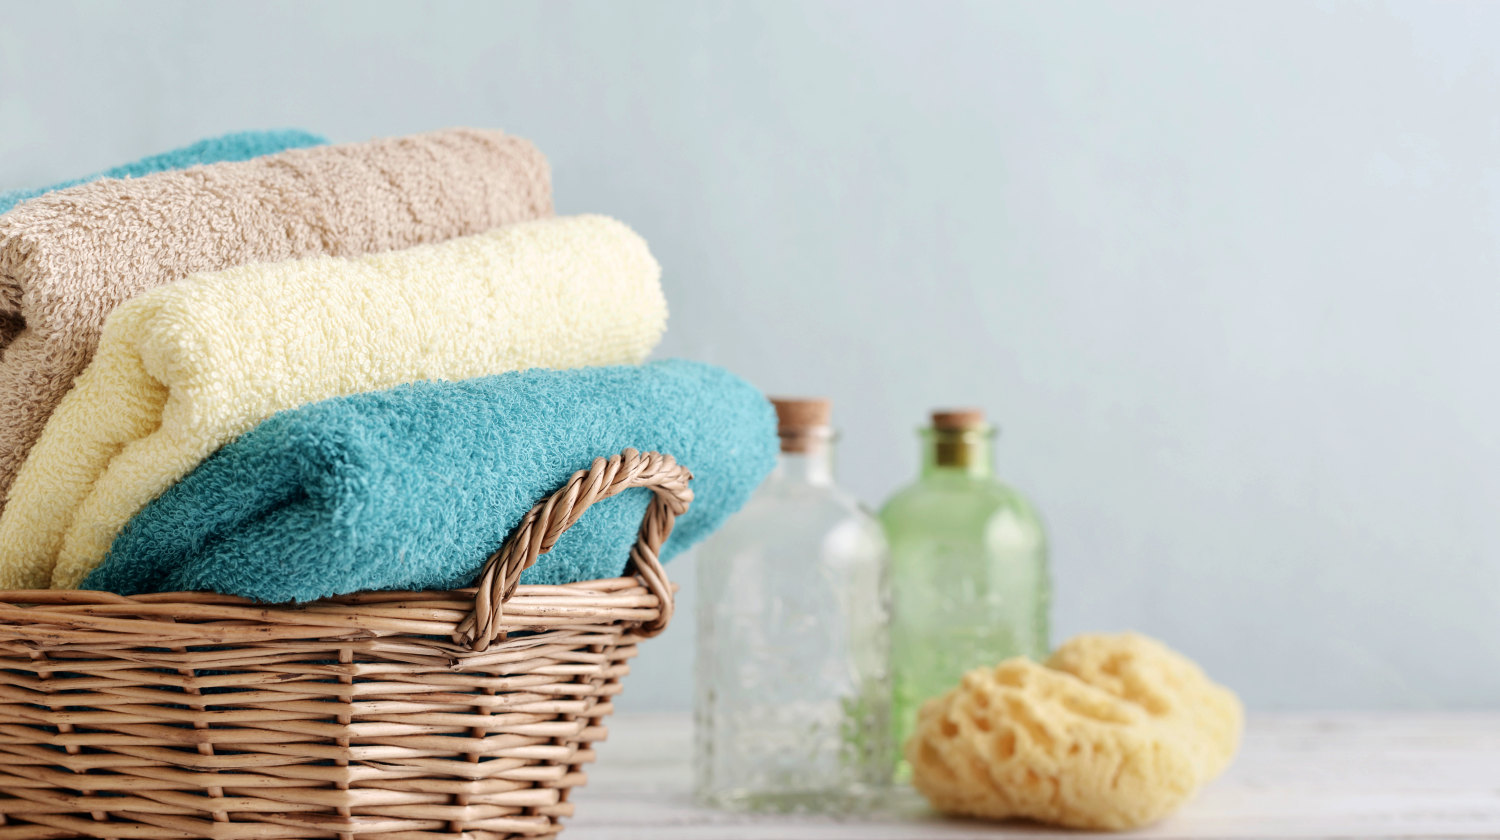 Feature | Bath towels of different colors in wicker basket on light background | How To Get Sour Smell Out Of Towels